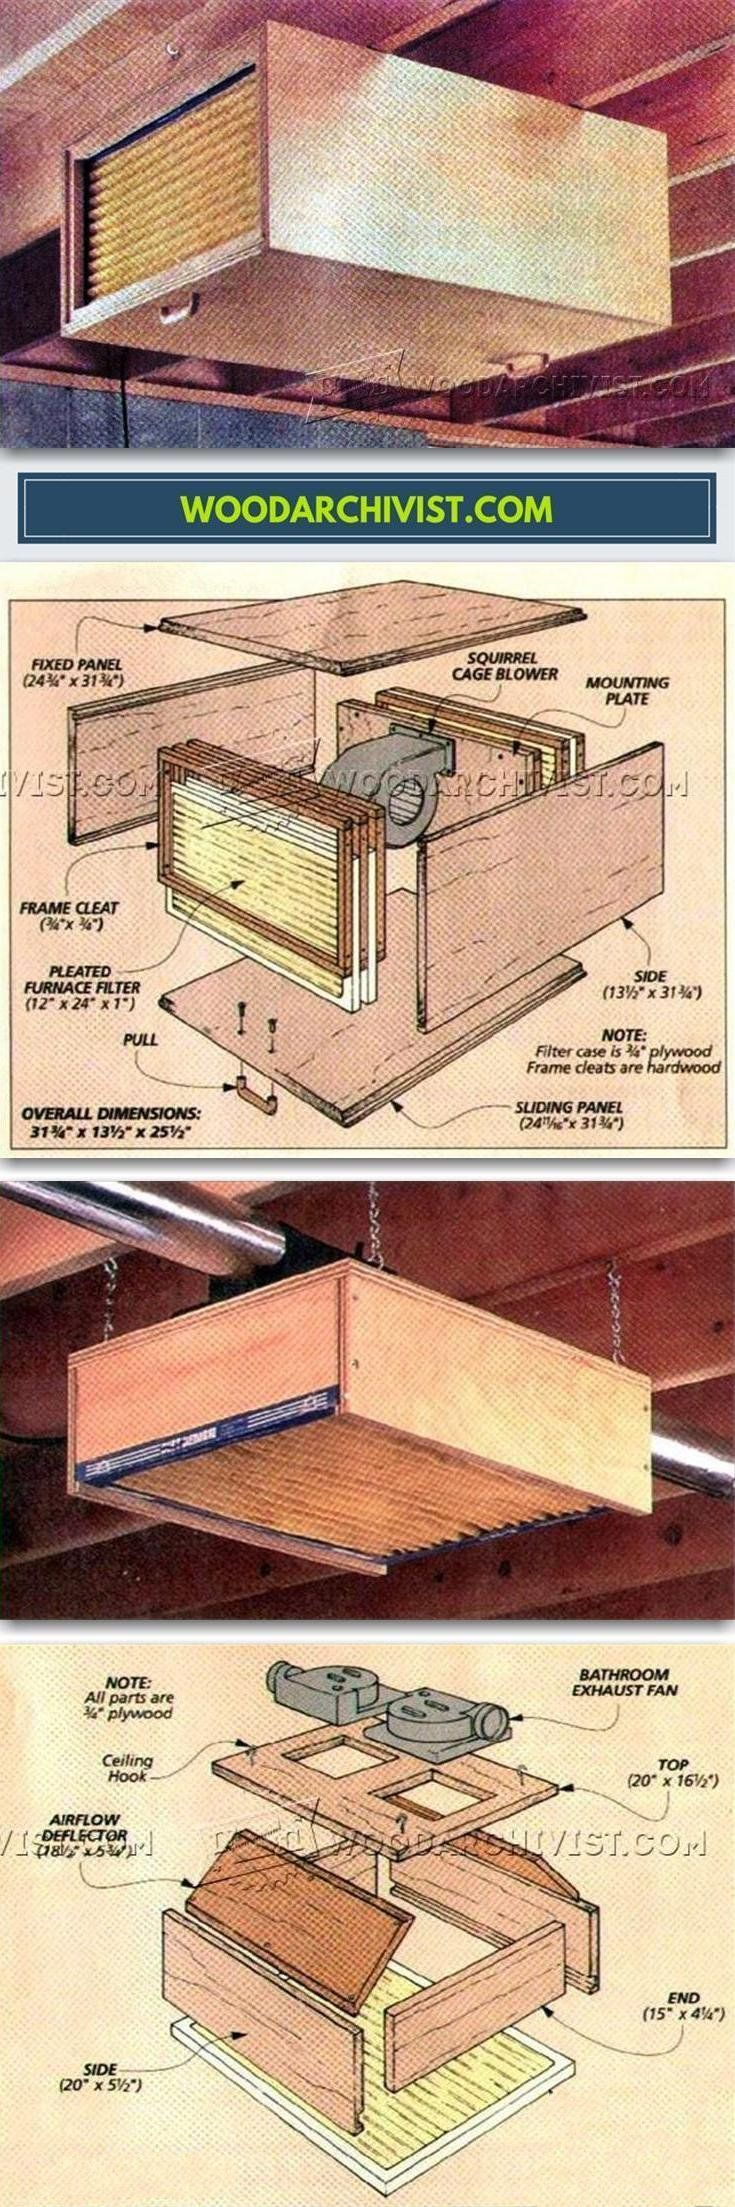 DIY Shop Air Cleaner - Dust Collection Tips, Jigs and Fixtures | WoodArchivist.com